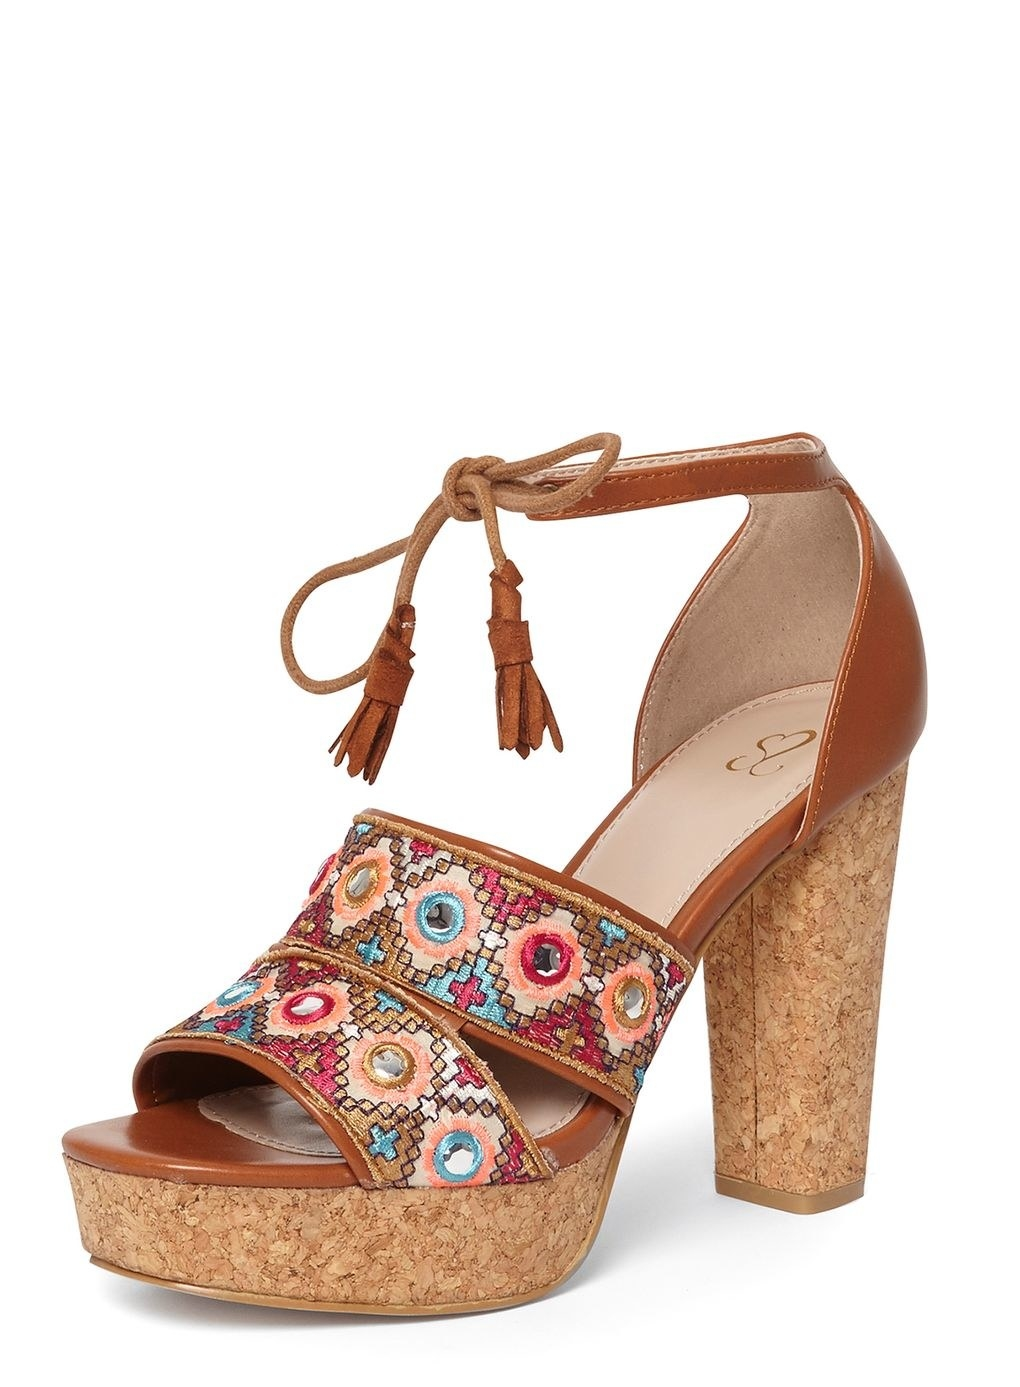 15 Legitimately Cute Shoes For Ladies With Big Feet